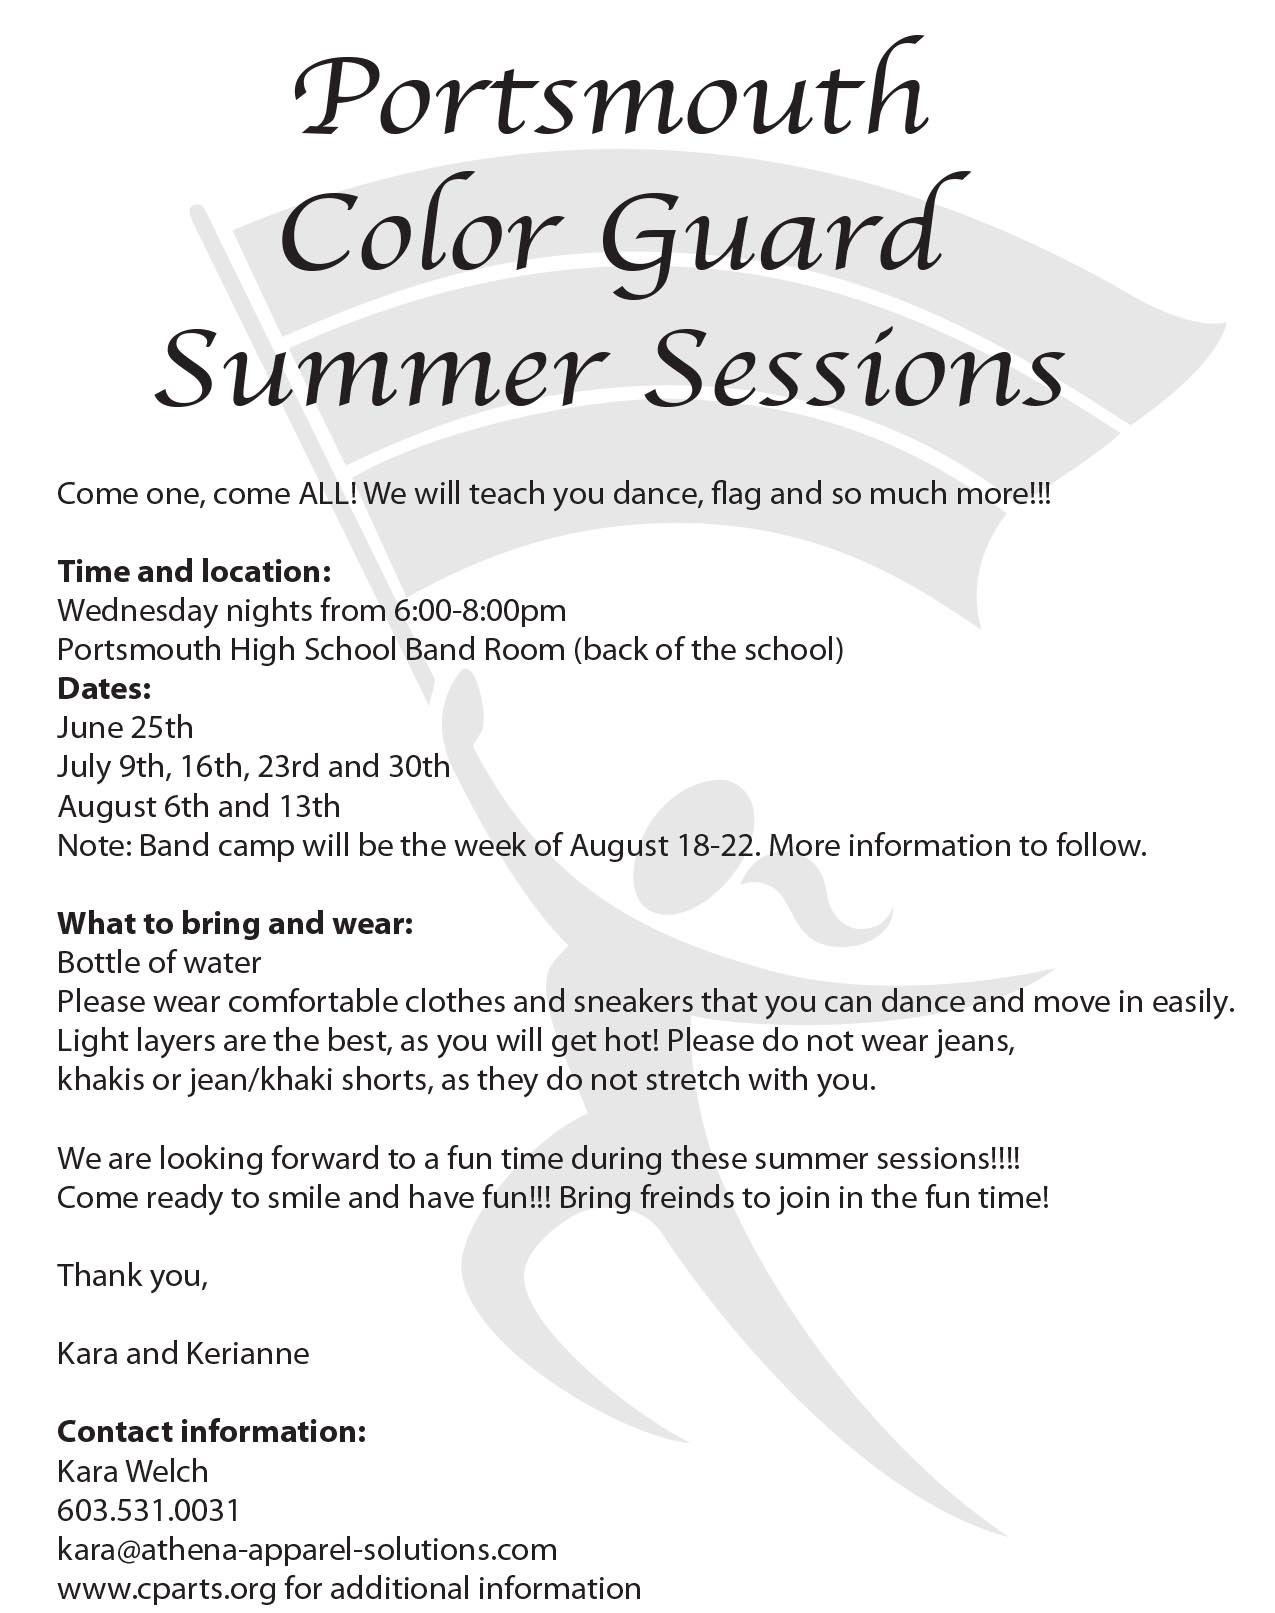 COLOR GUARD SUMMER SESSIONS